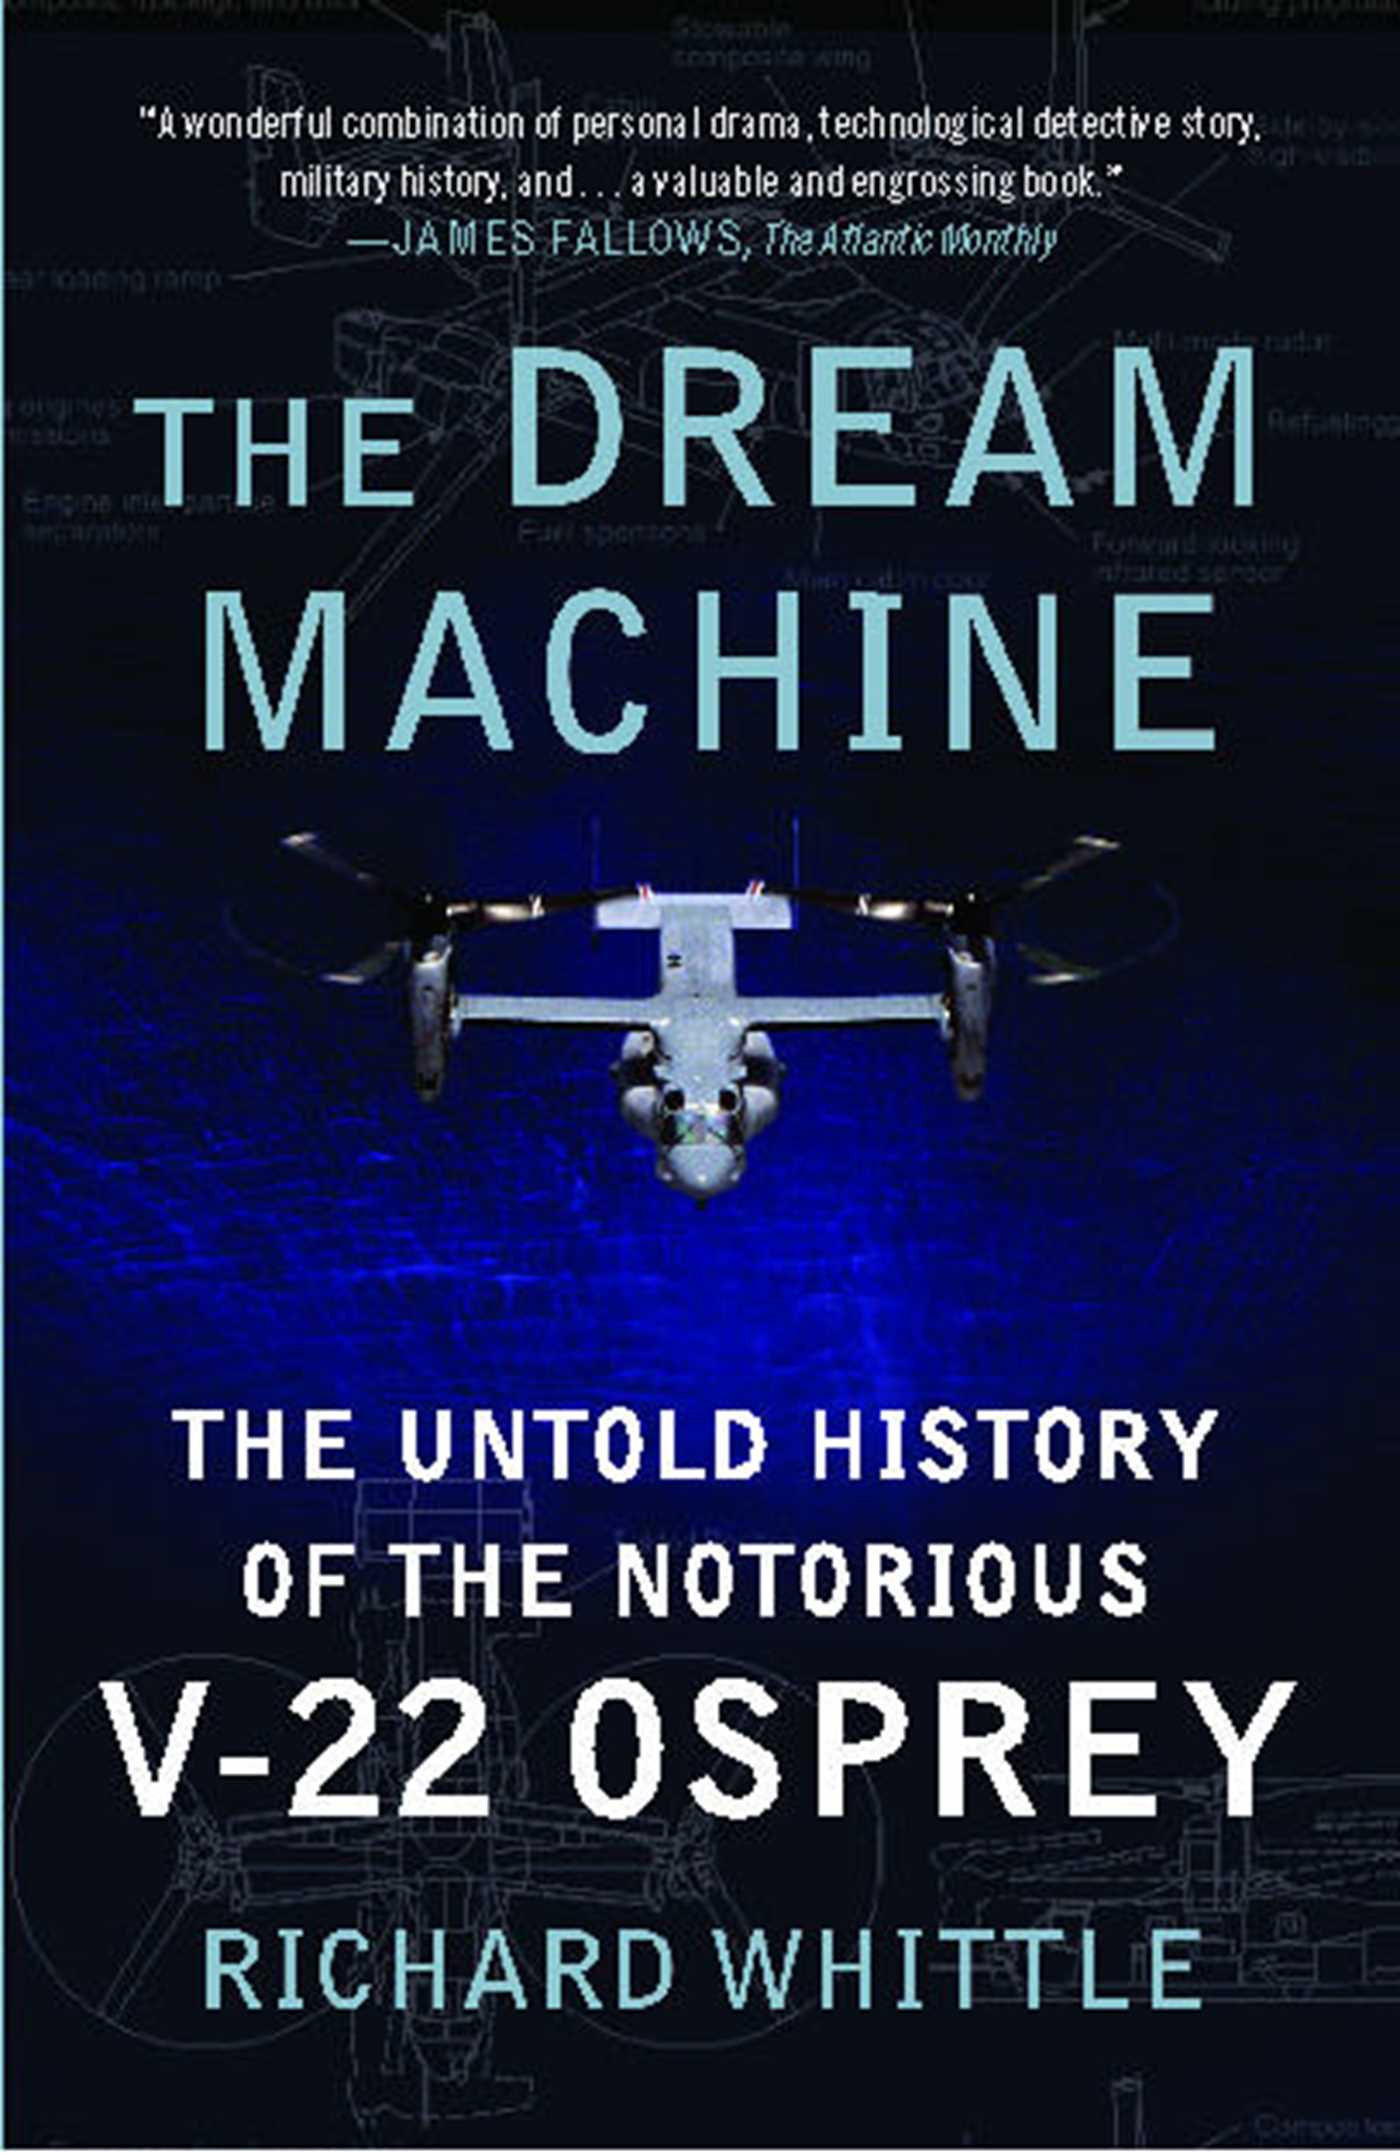 Dream-machine-9781416563198_hr